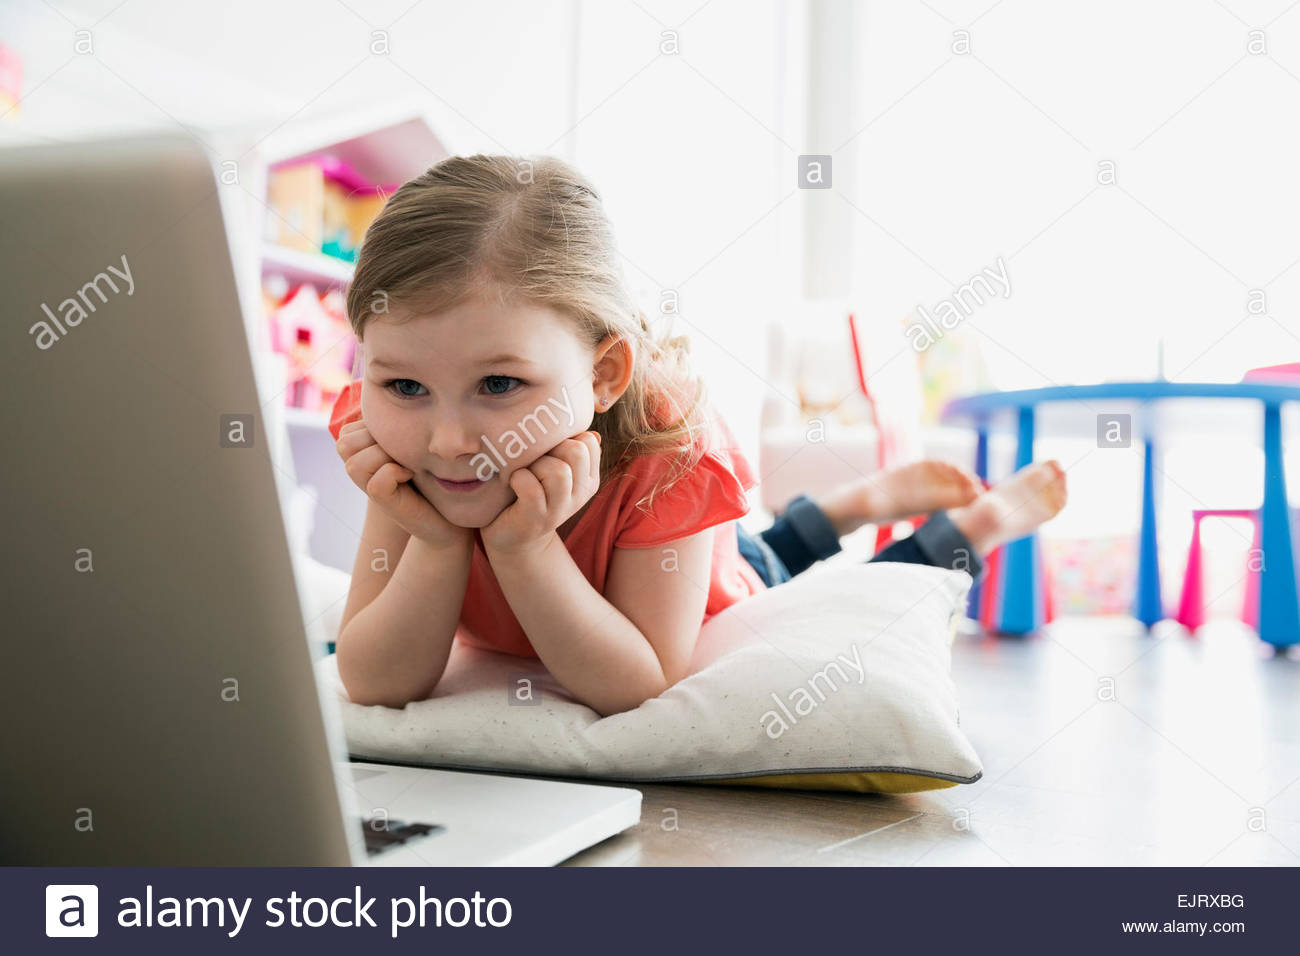 Girl using laptop on floor with pillow - Stock Image